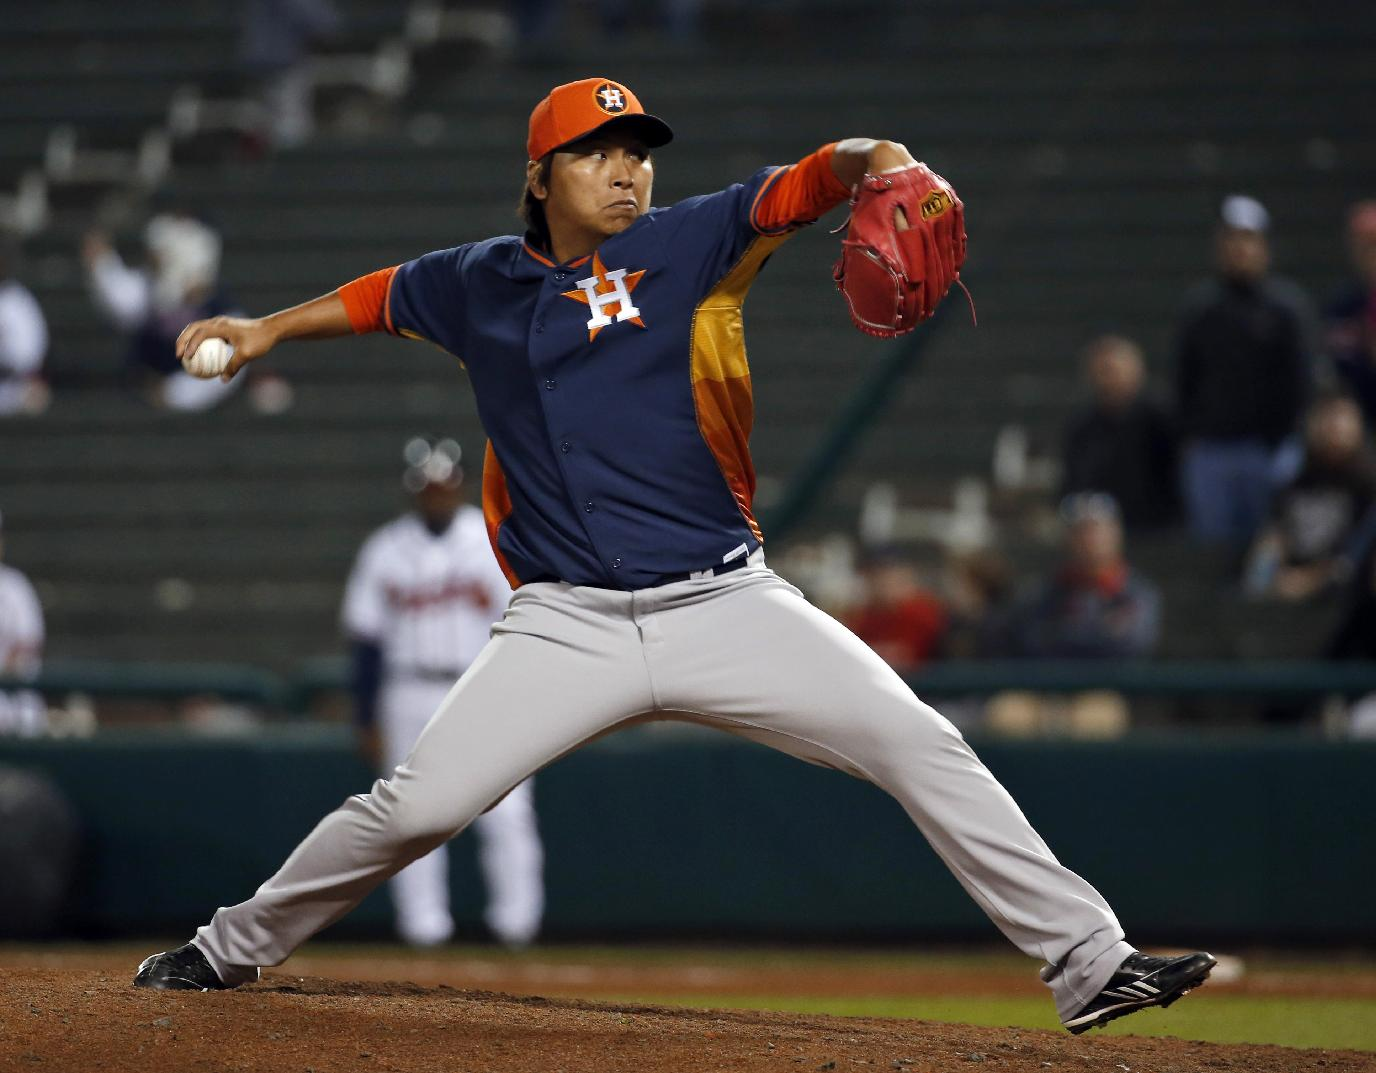 Houston Astros pitcher Chia-Jen Lo throws in the ninth inning of an exhibition baseball game against the Atlanta Braves, Friday, Feb. 28, 2014, in Kissimmee, Fla. The Astros won 7-5